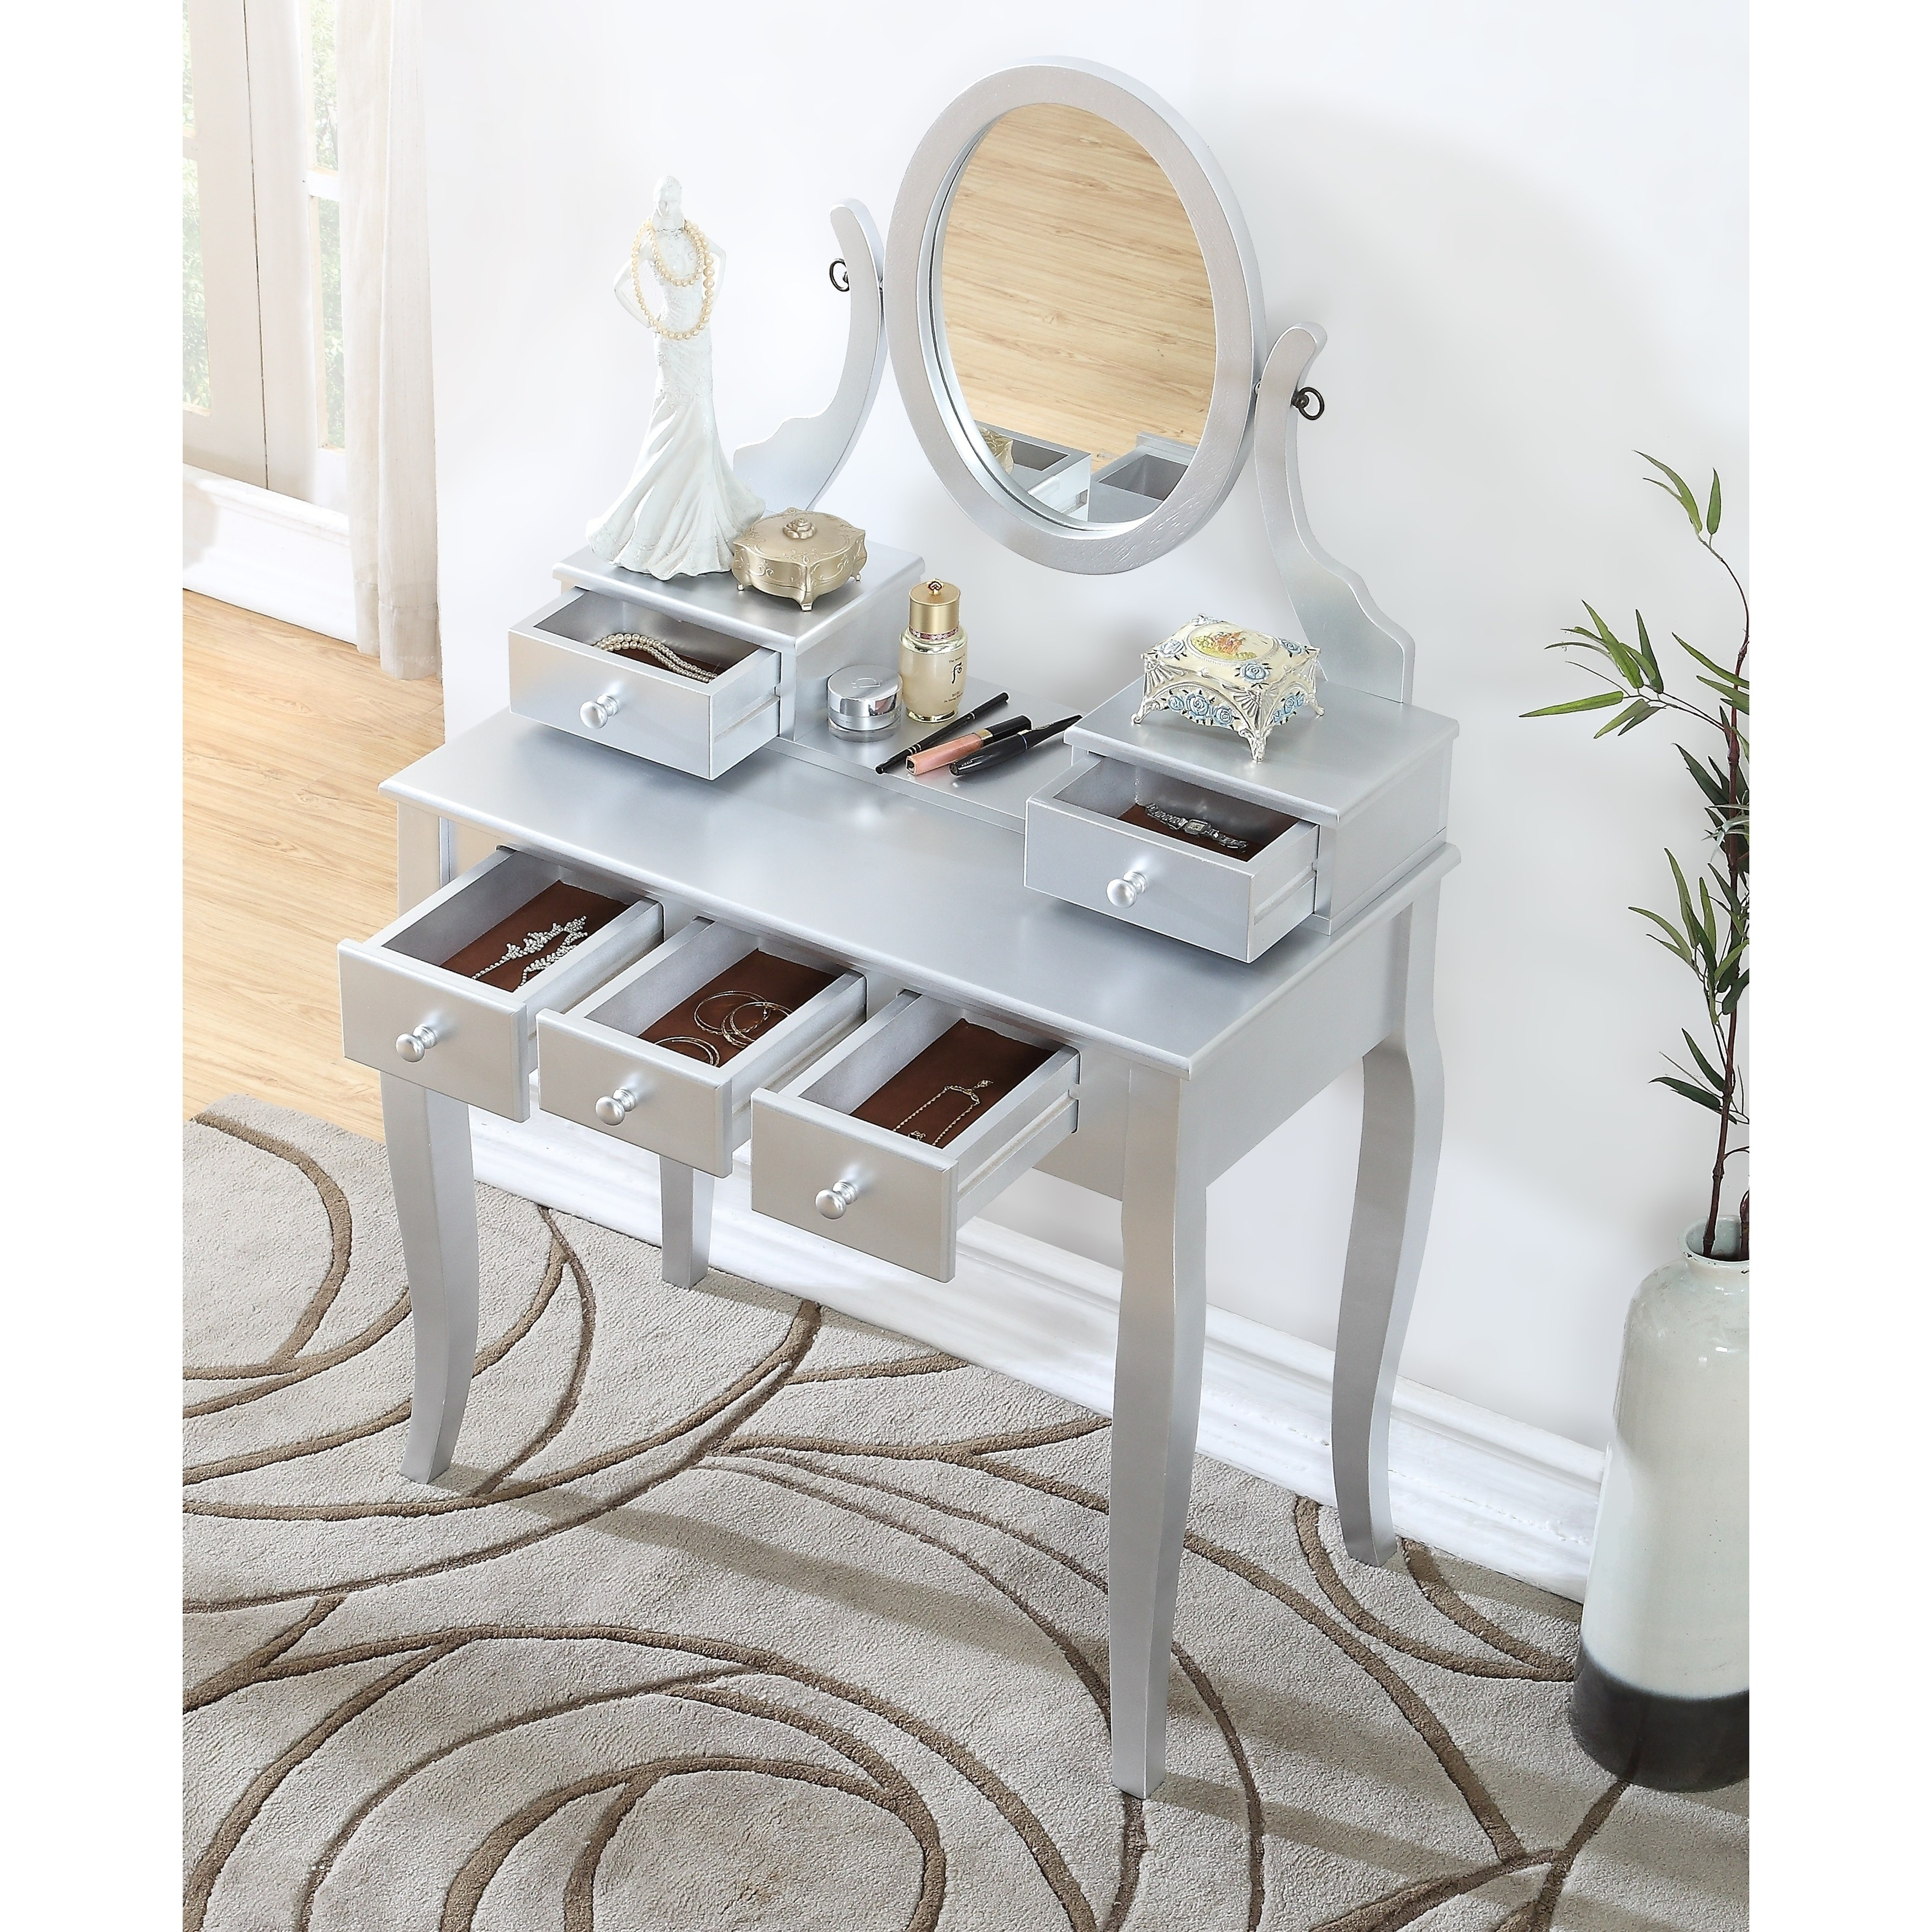 Oak Makeup Vanity Set. Maison Rouge Alice Wood Makeup Vanity Table and Stool Set  Free Shipping Today Overstock com 17882090